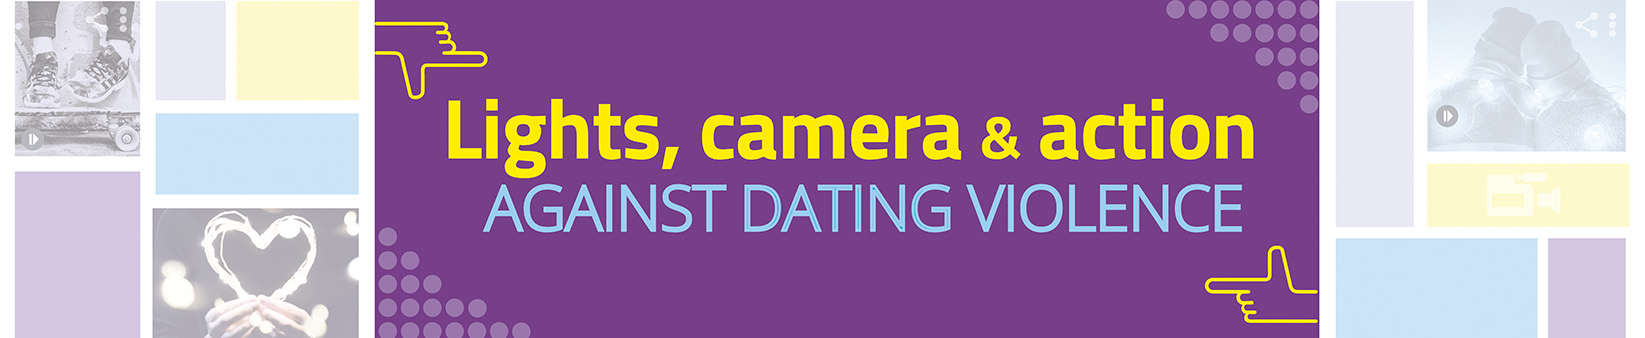 Lights, camera & action, AGAINST DATING VIOLENCE.